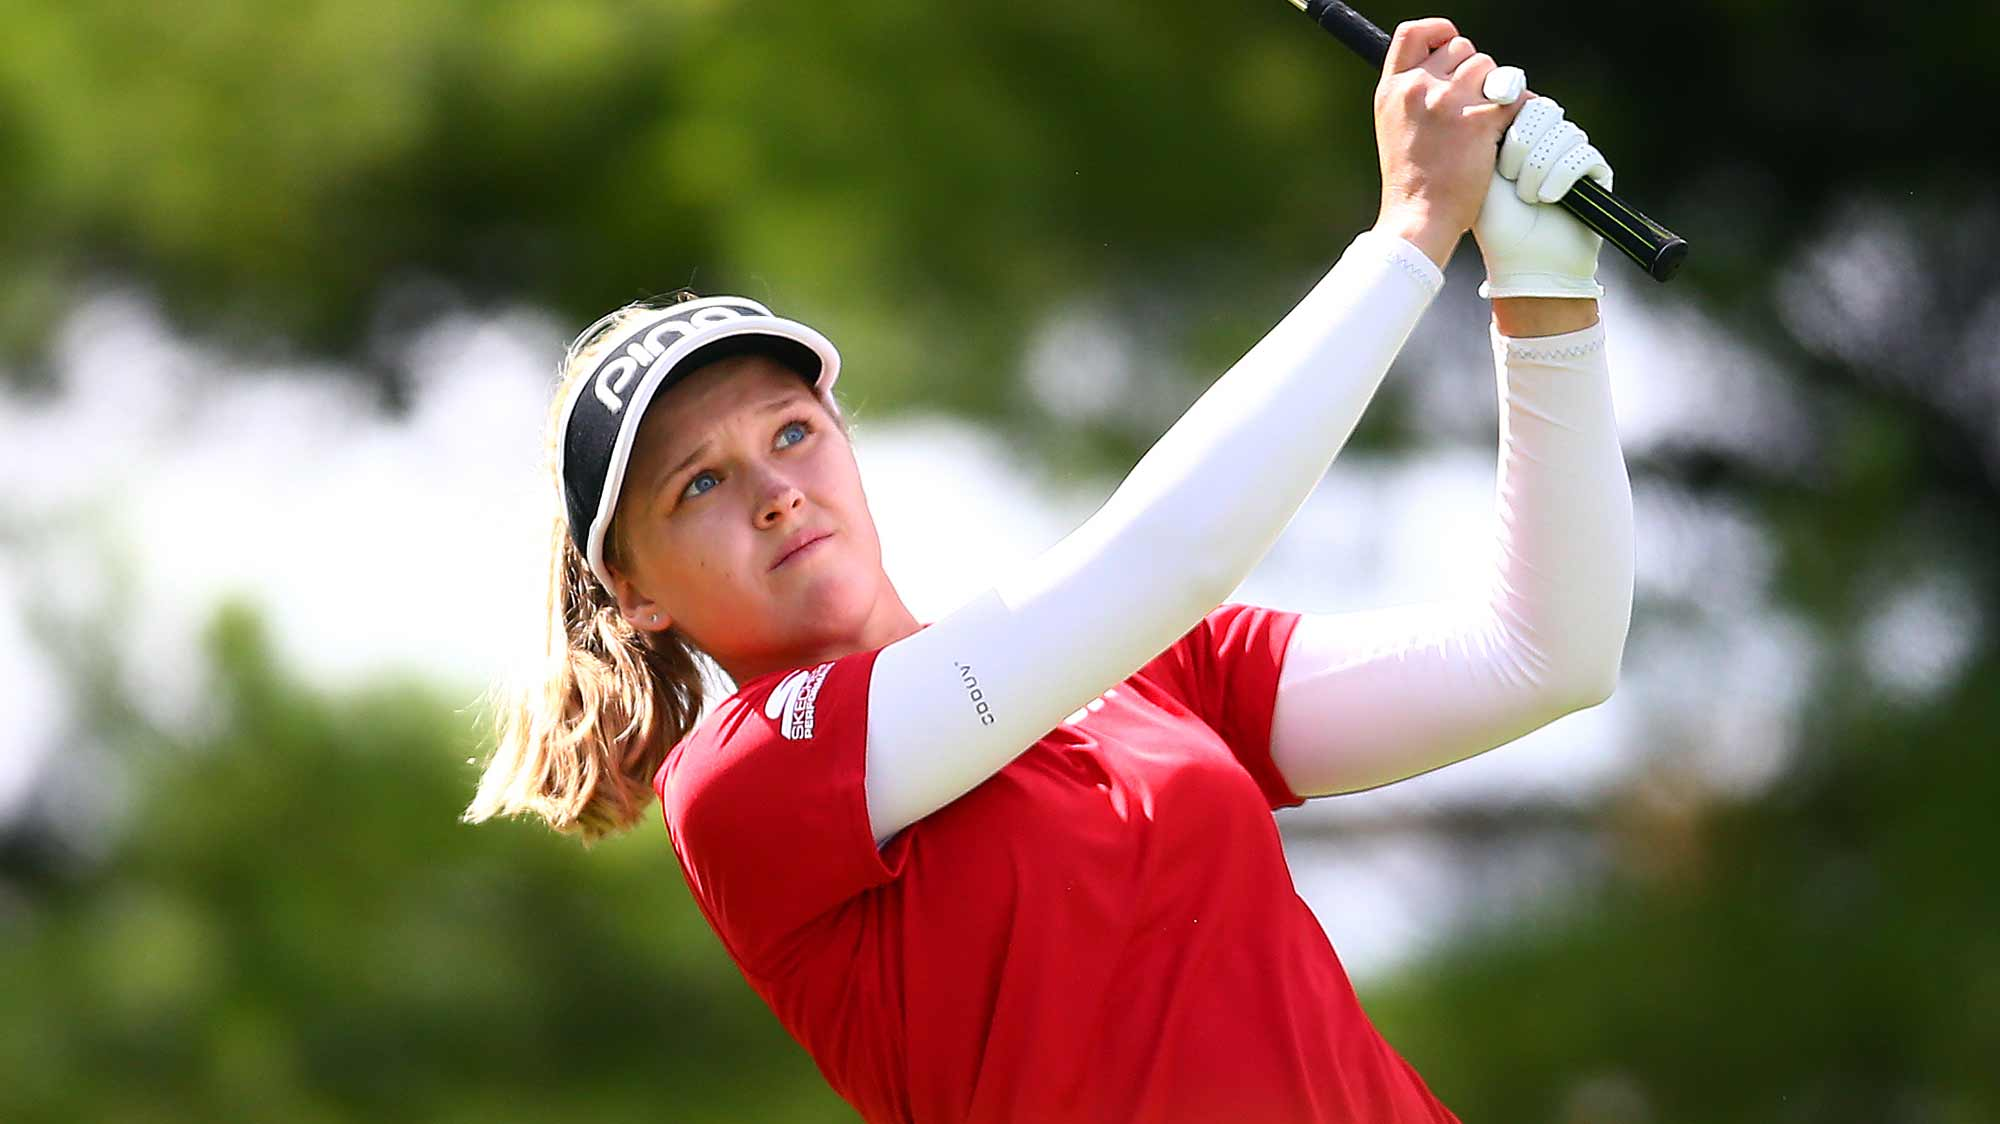 Brooke Henderson of Canada hits her tee shot on the 2nd hole during the final round of the CP Women's Open at Magna Golf Club on August 25, 2019 in Aurora, Canada